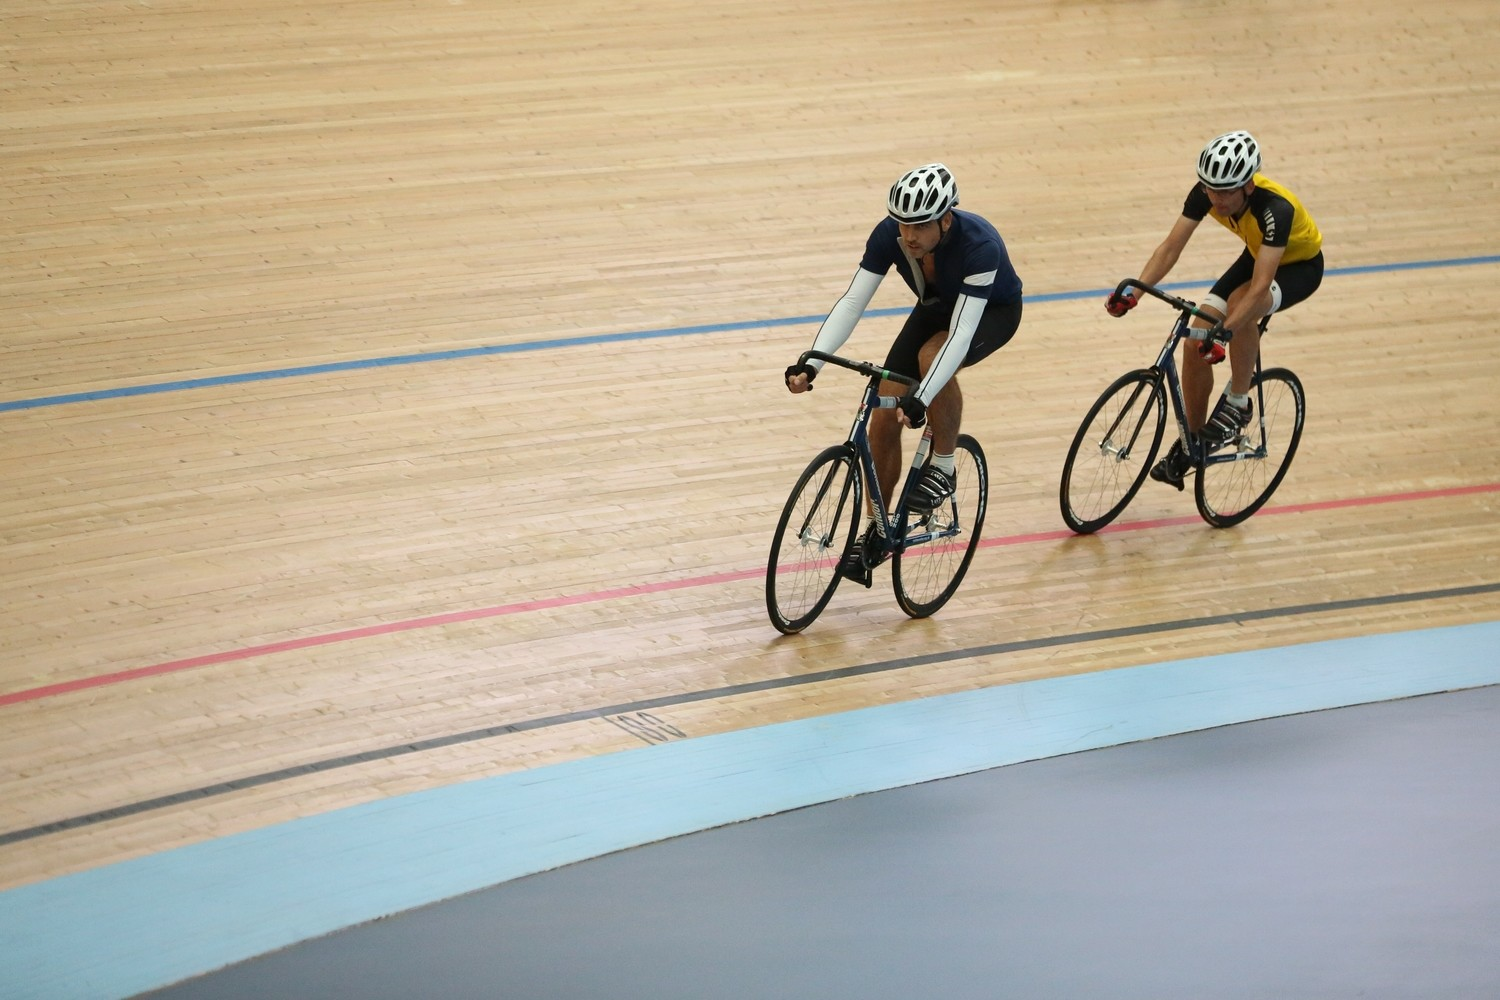 DEPOSIT: EXCLUSIVE TRACK CYCLING EXPERIENCE For up to 16 People